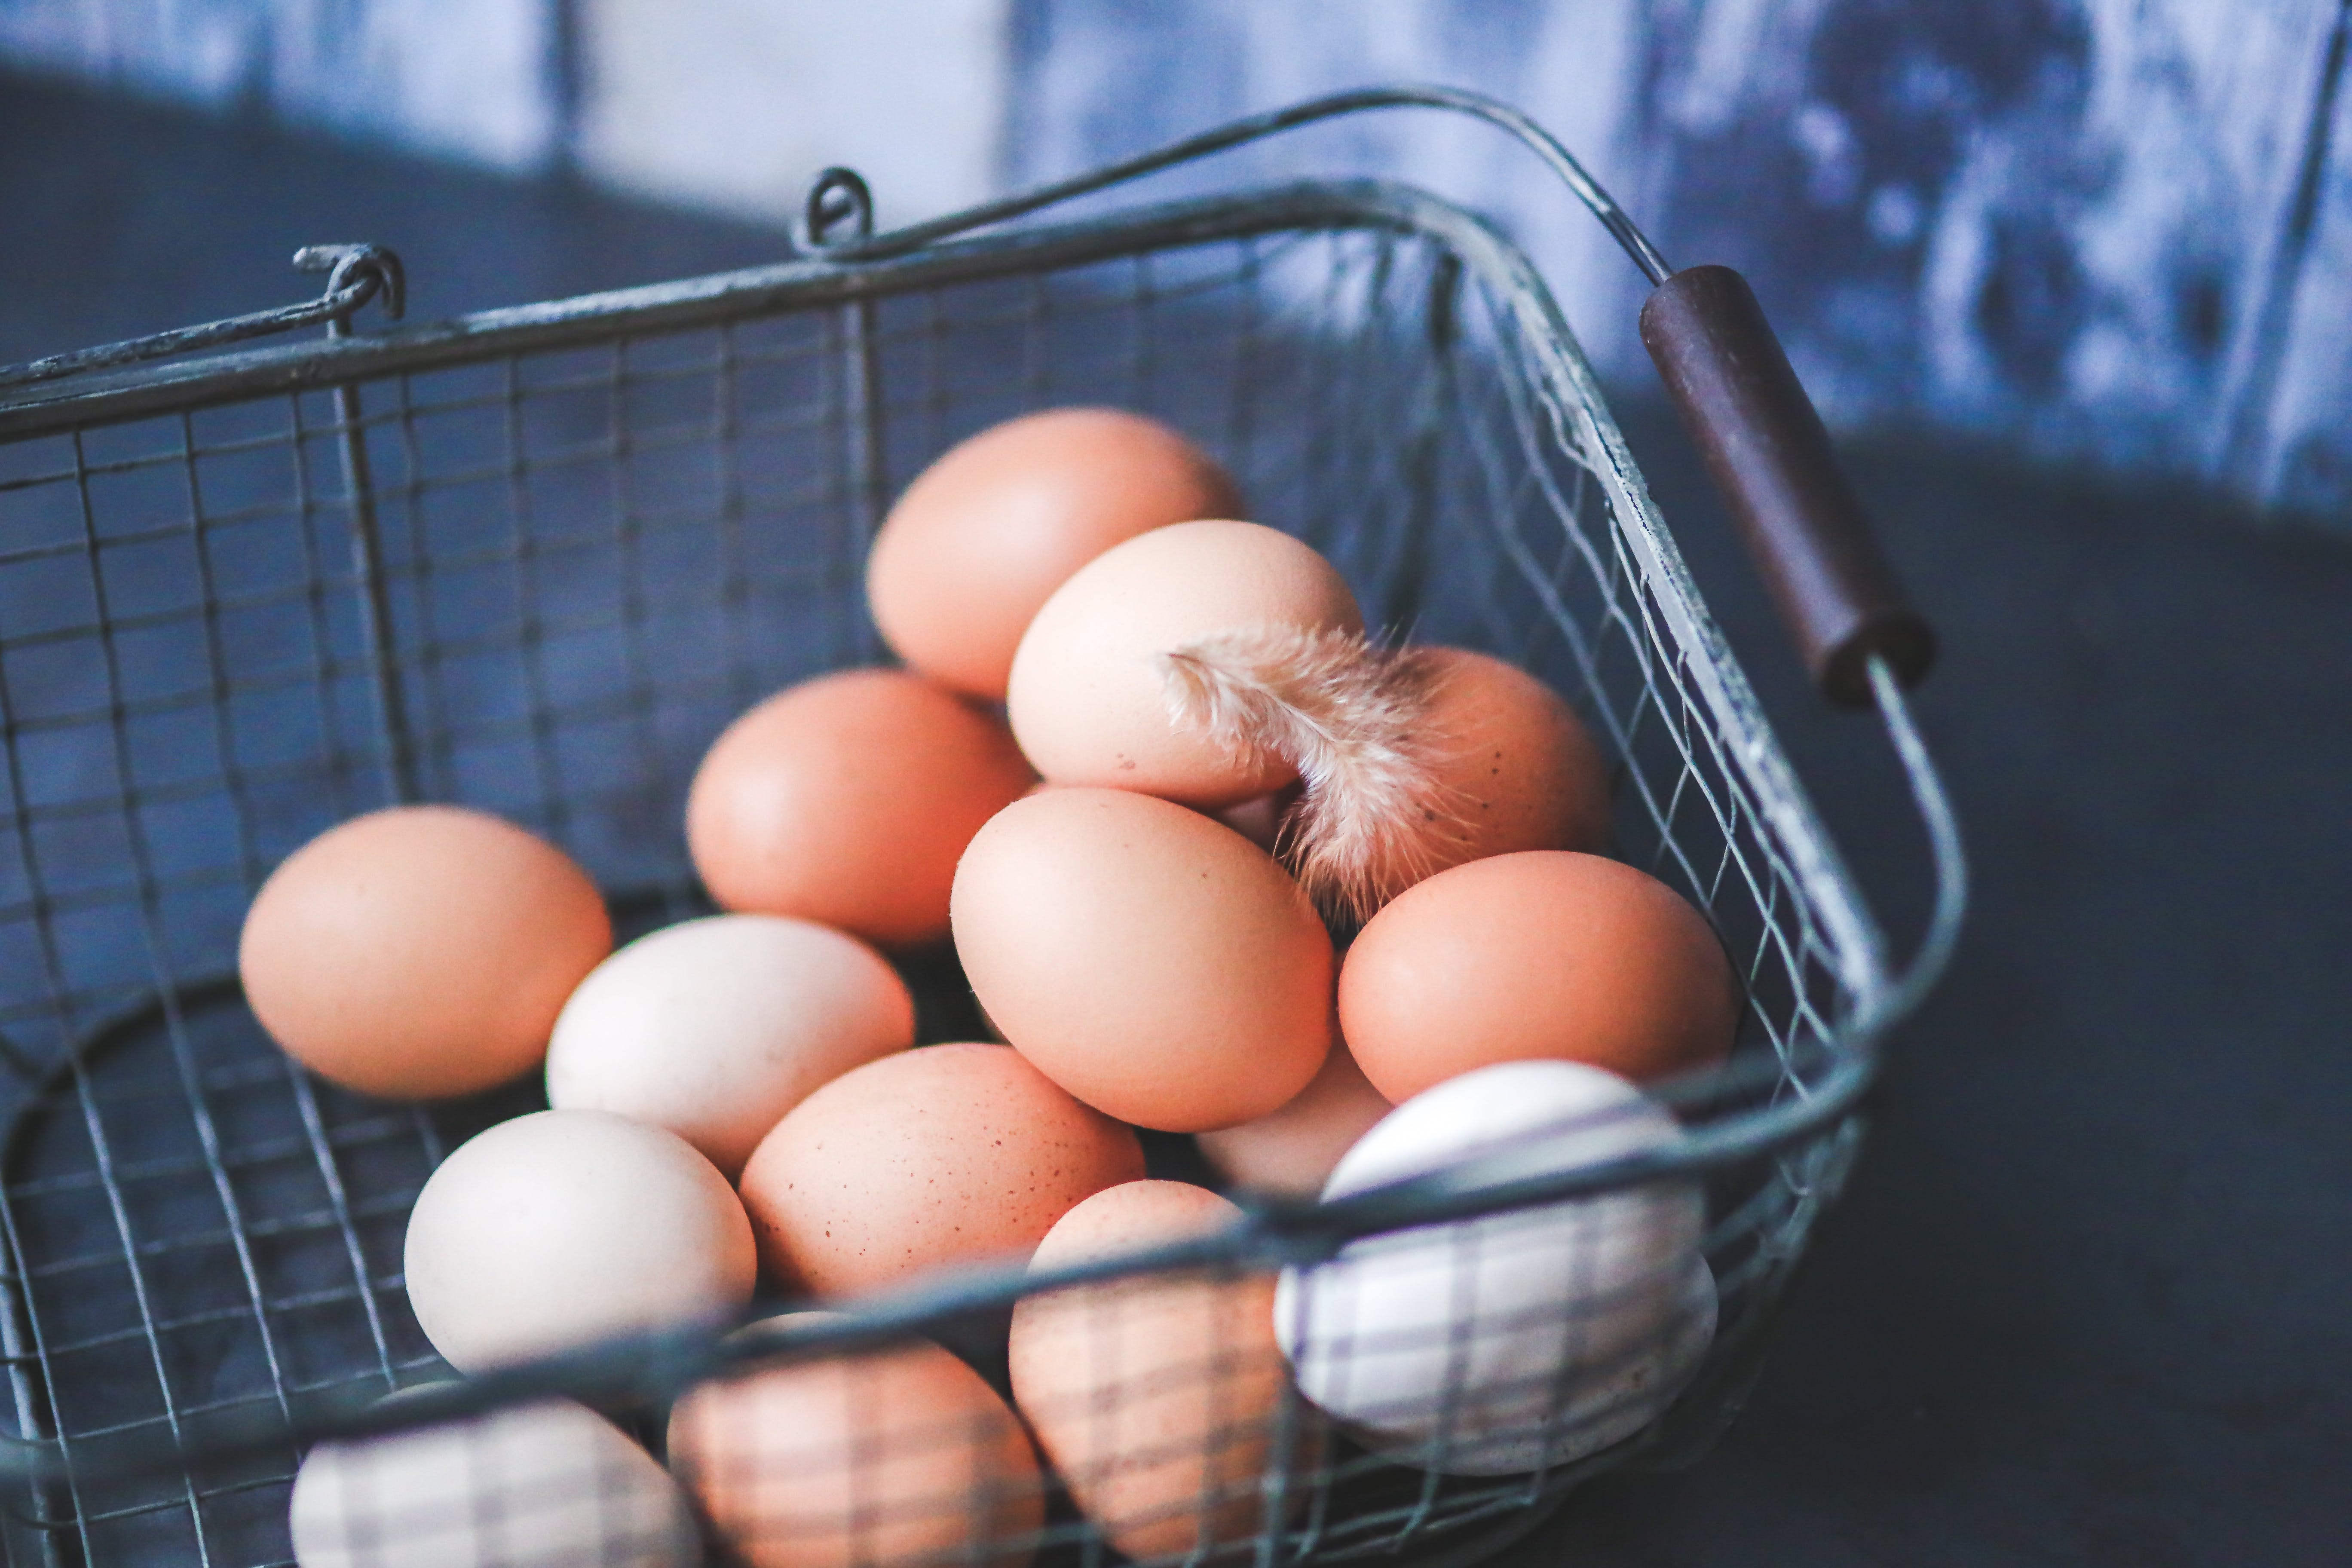 Eggs in the Metal Basket